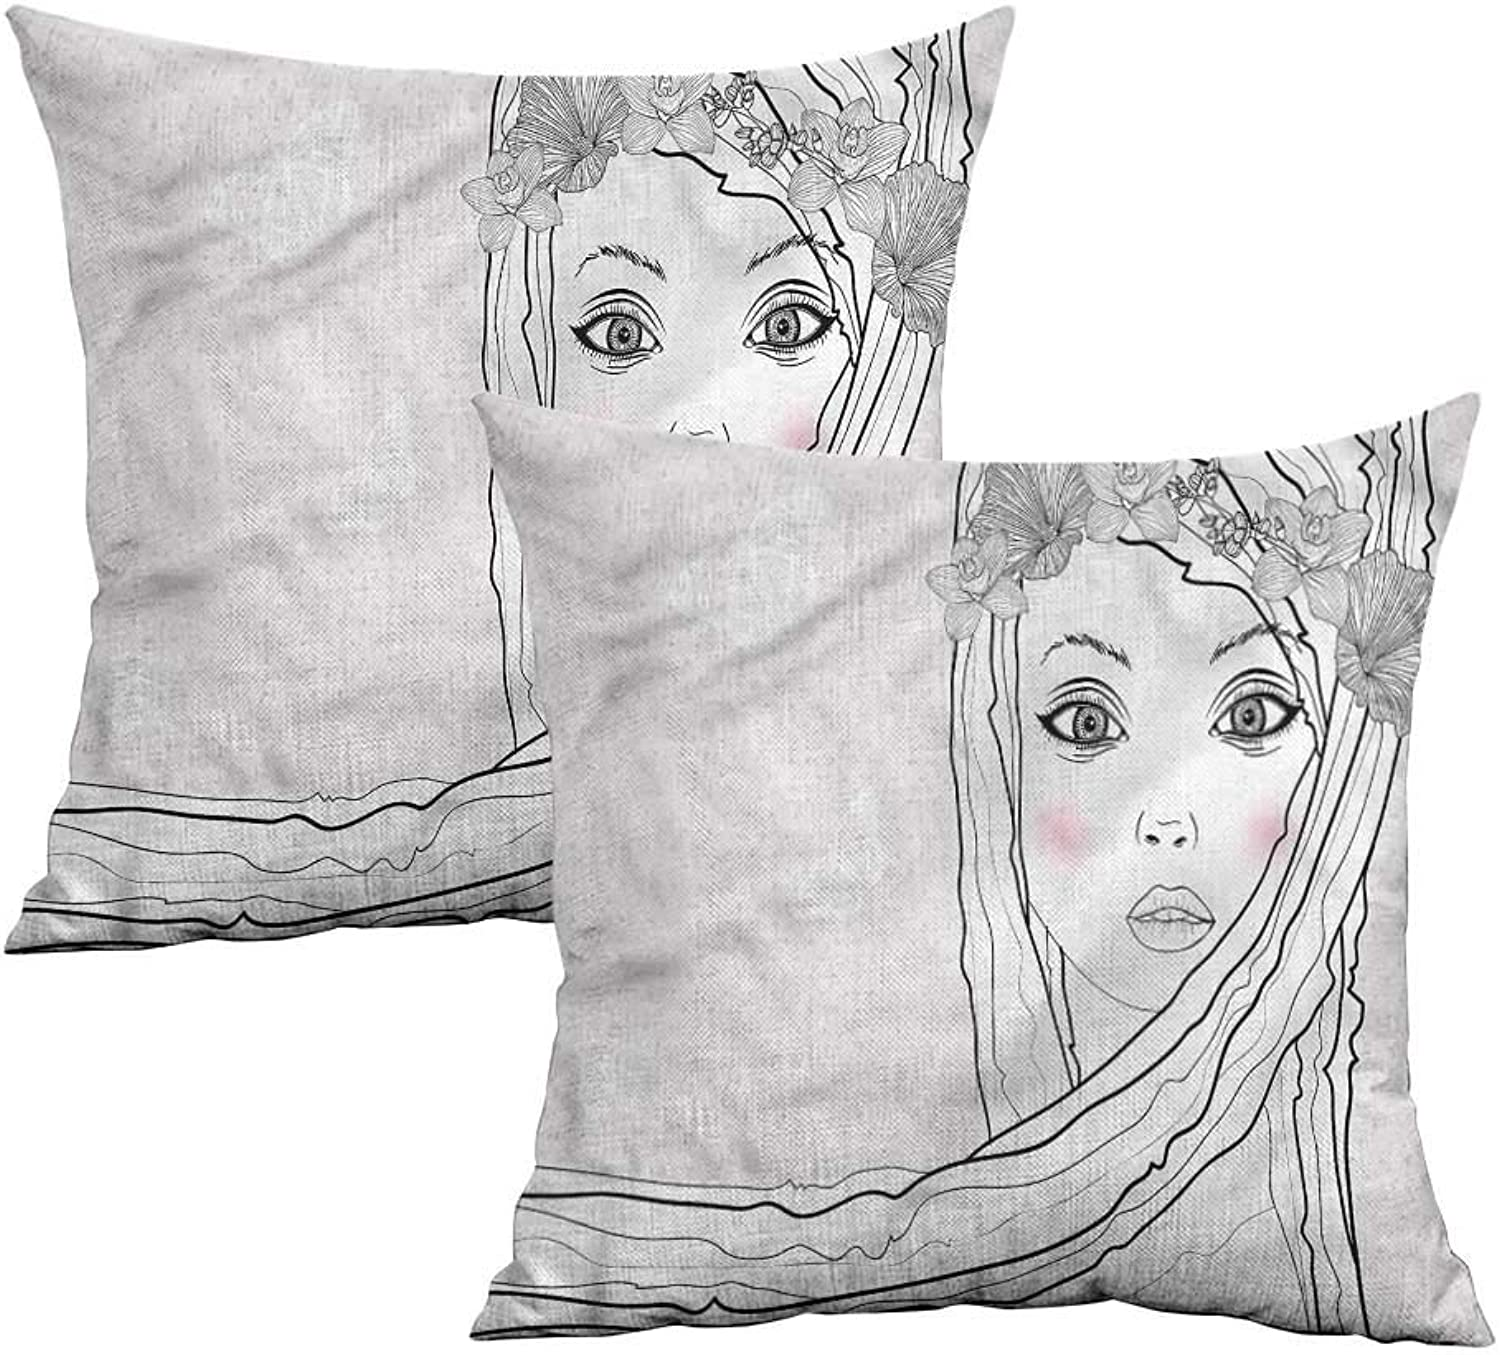 Khaki home Teen Room Square Pillowcase Covers with Zipper Girl with Floral Hair Square Personalized Pillowcase Cushion Cases Pillowcases for Sofa Bedroom Car W 20  x L 20  2 pcs